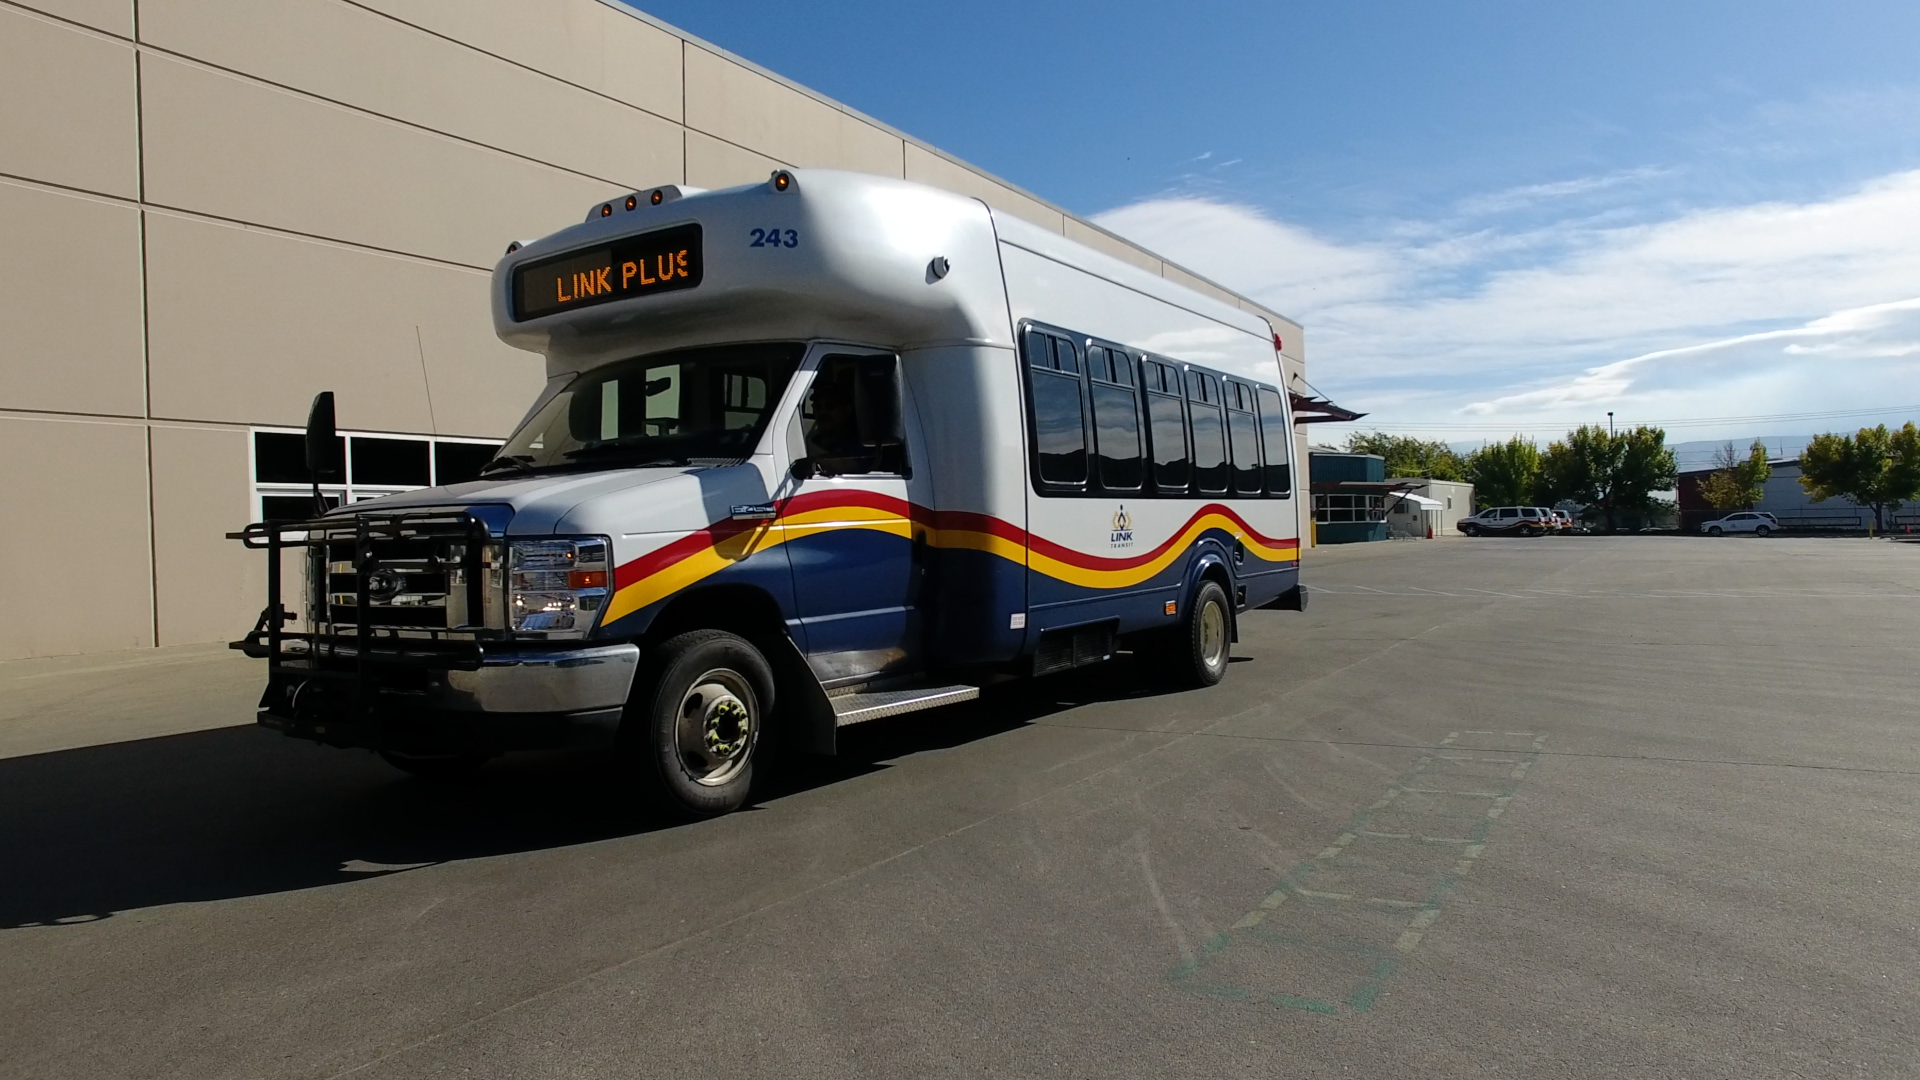 Bus Using Ecolane's Transportation Software and Demand Response Management System